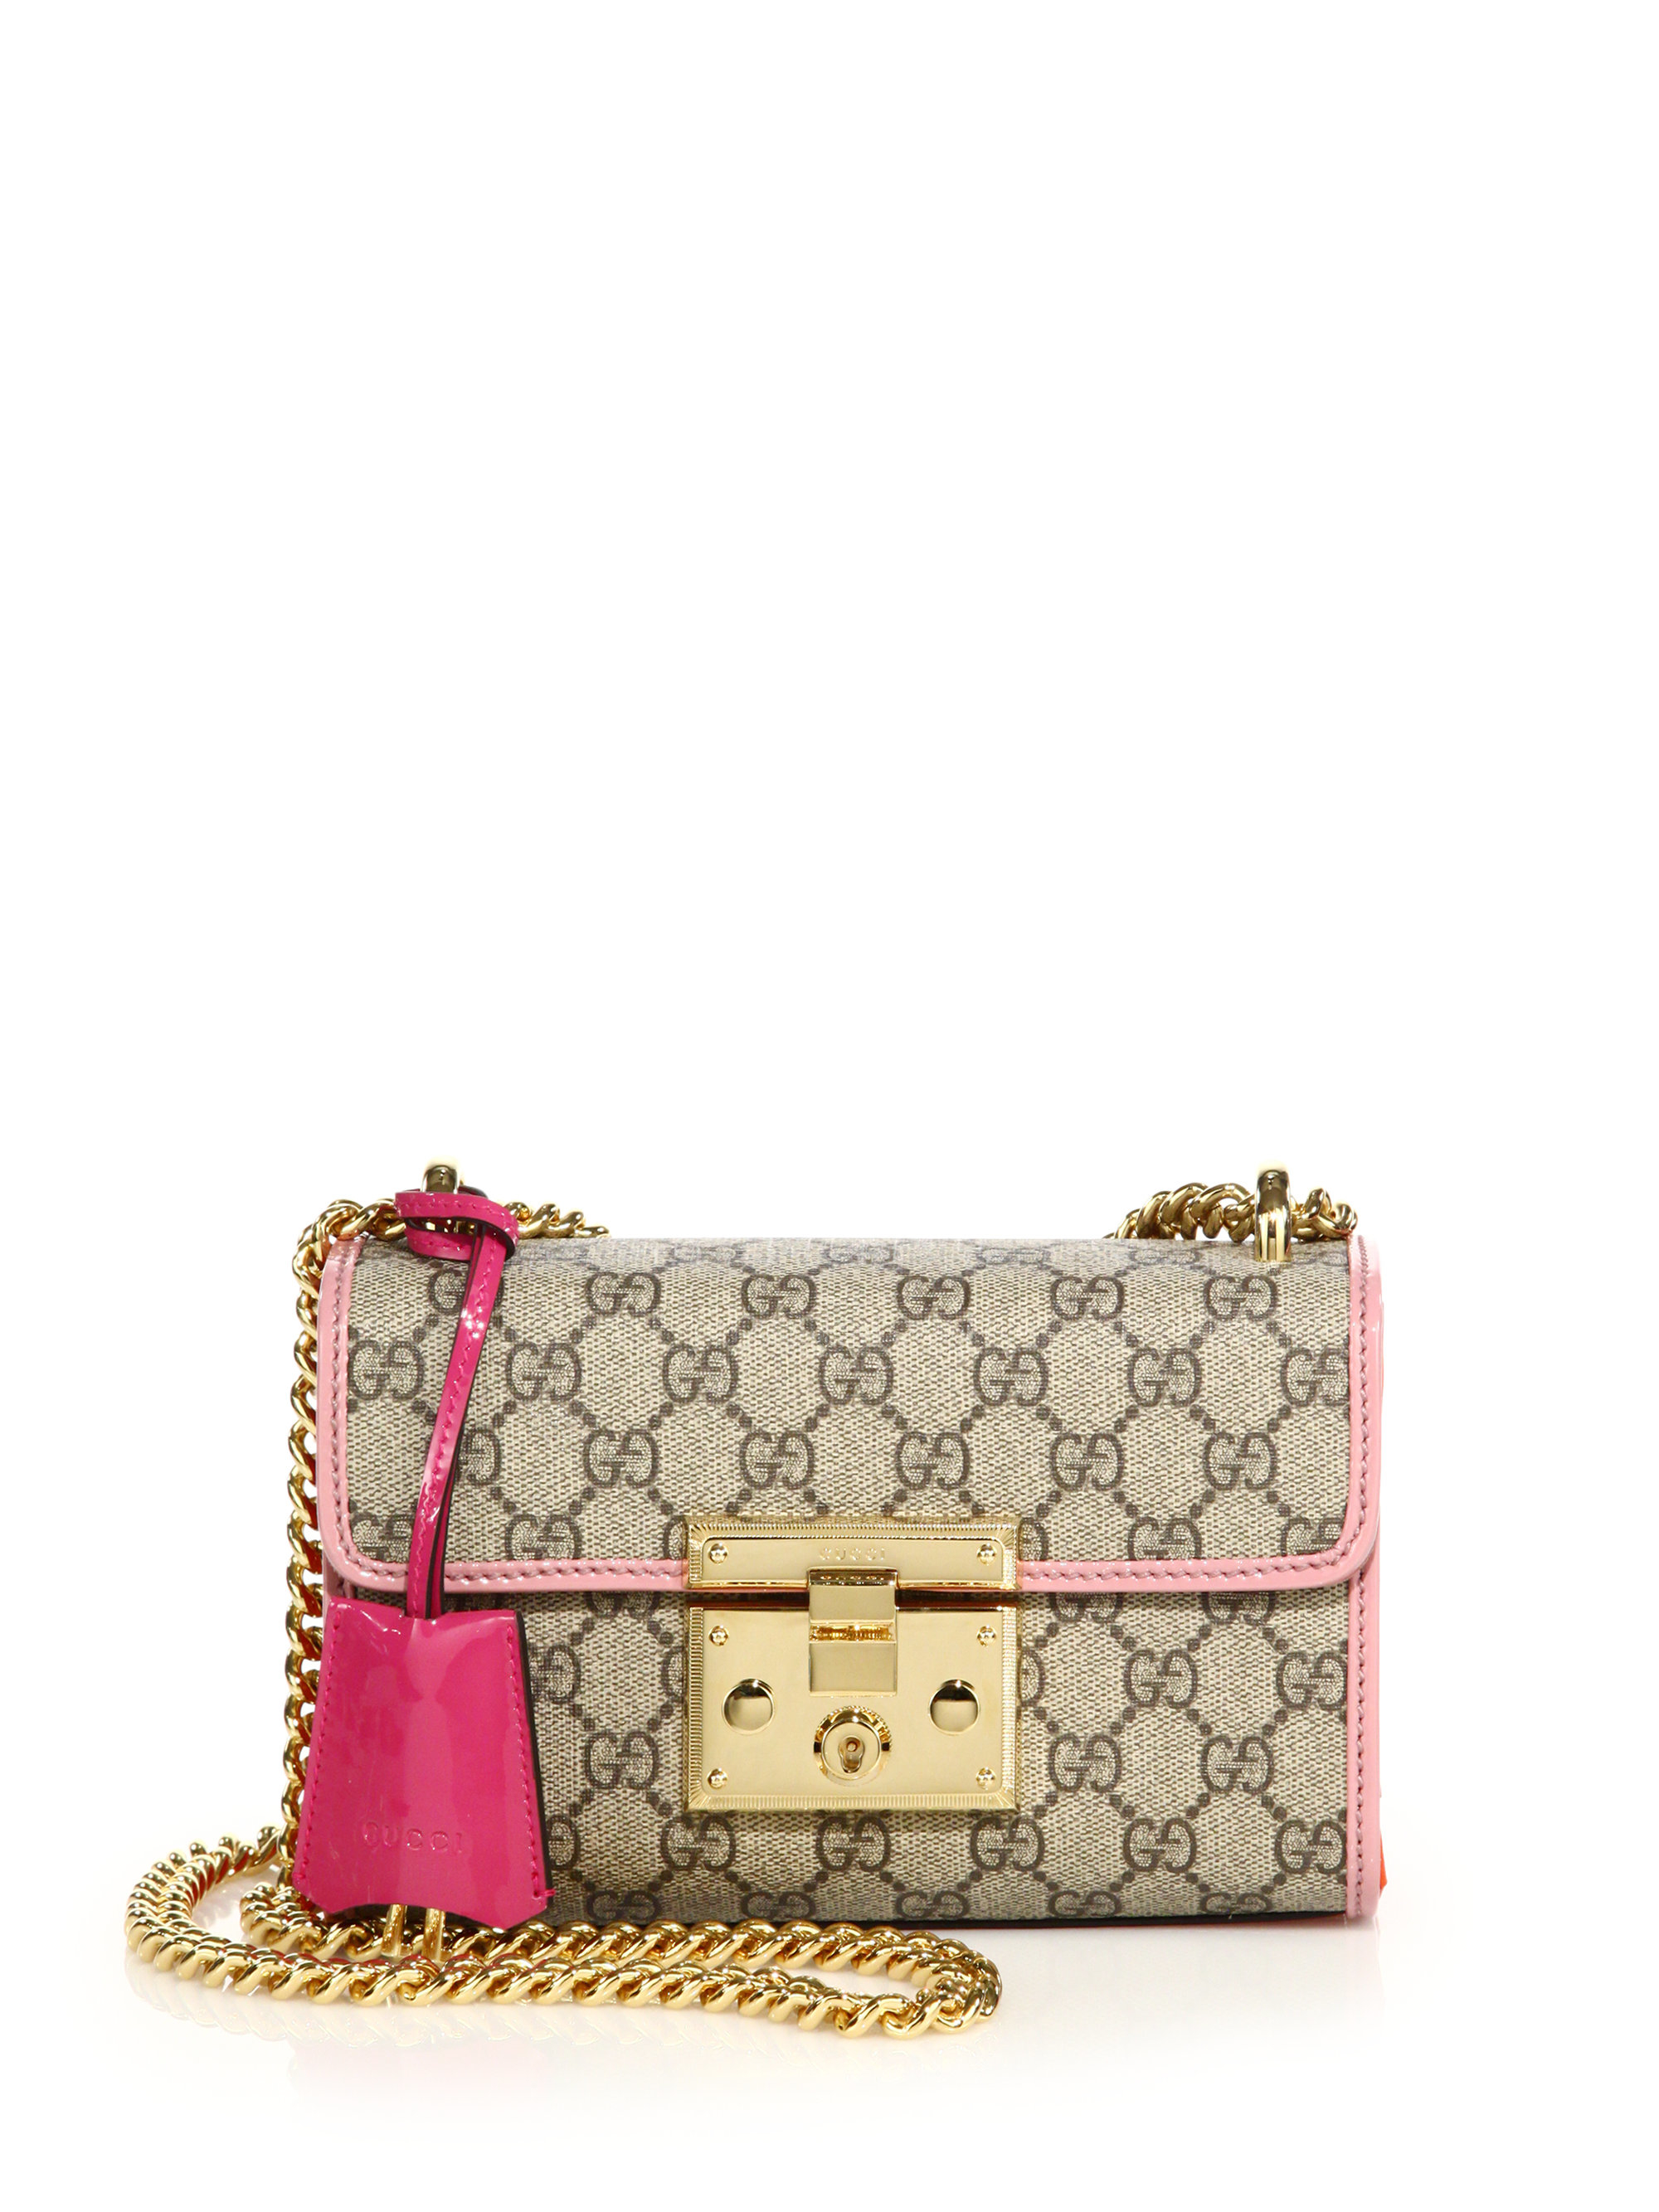 058d4f3e532 Lyst - Gucci Padlock Gg Supreme Small Shoulder Bag in Pink